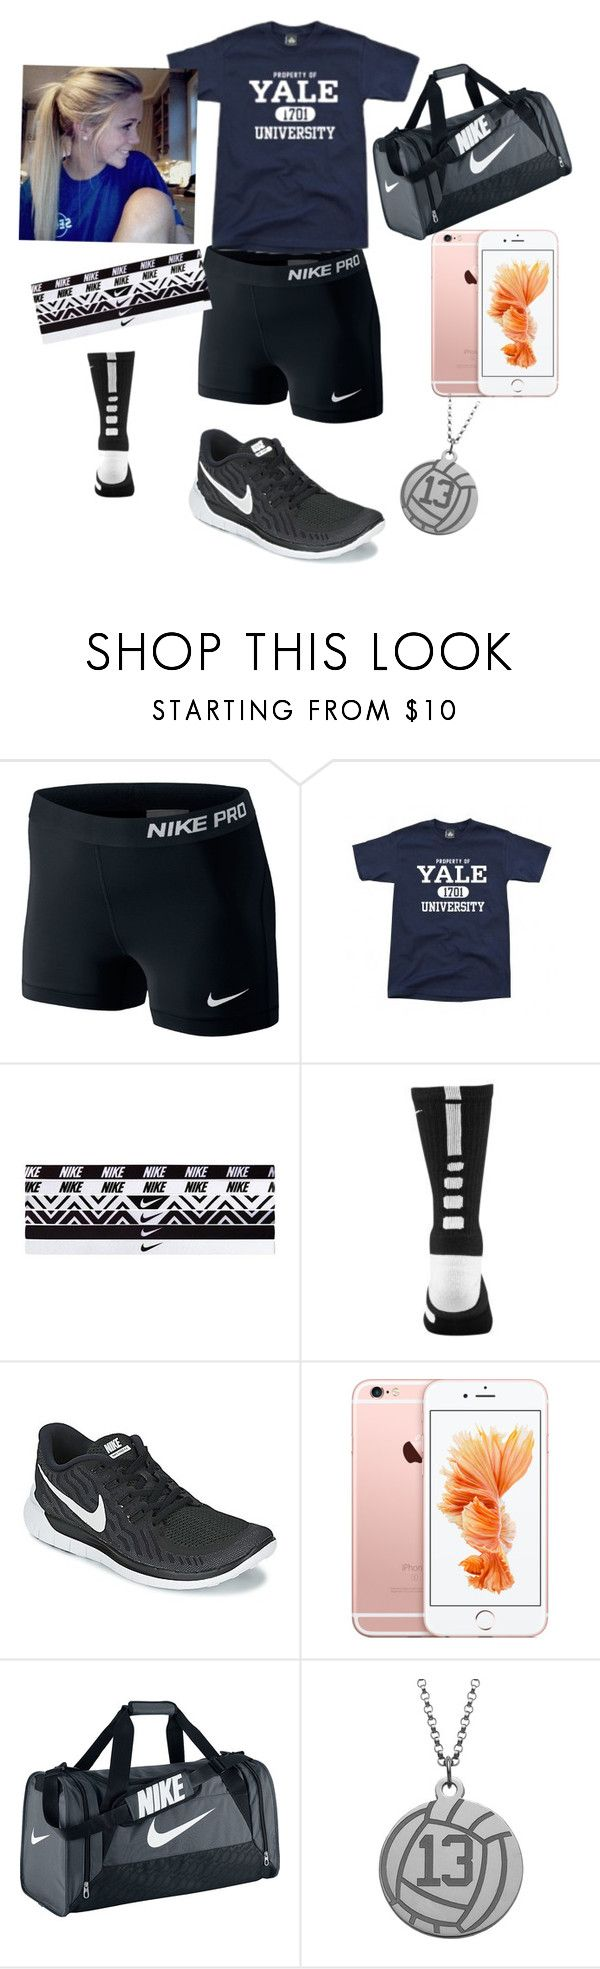 """Volleyball practice at Yale tonight"" by missylanning ❤ liked on Polyvore featuring NIKE"